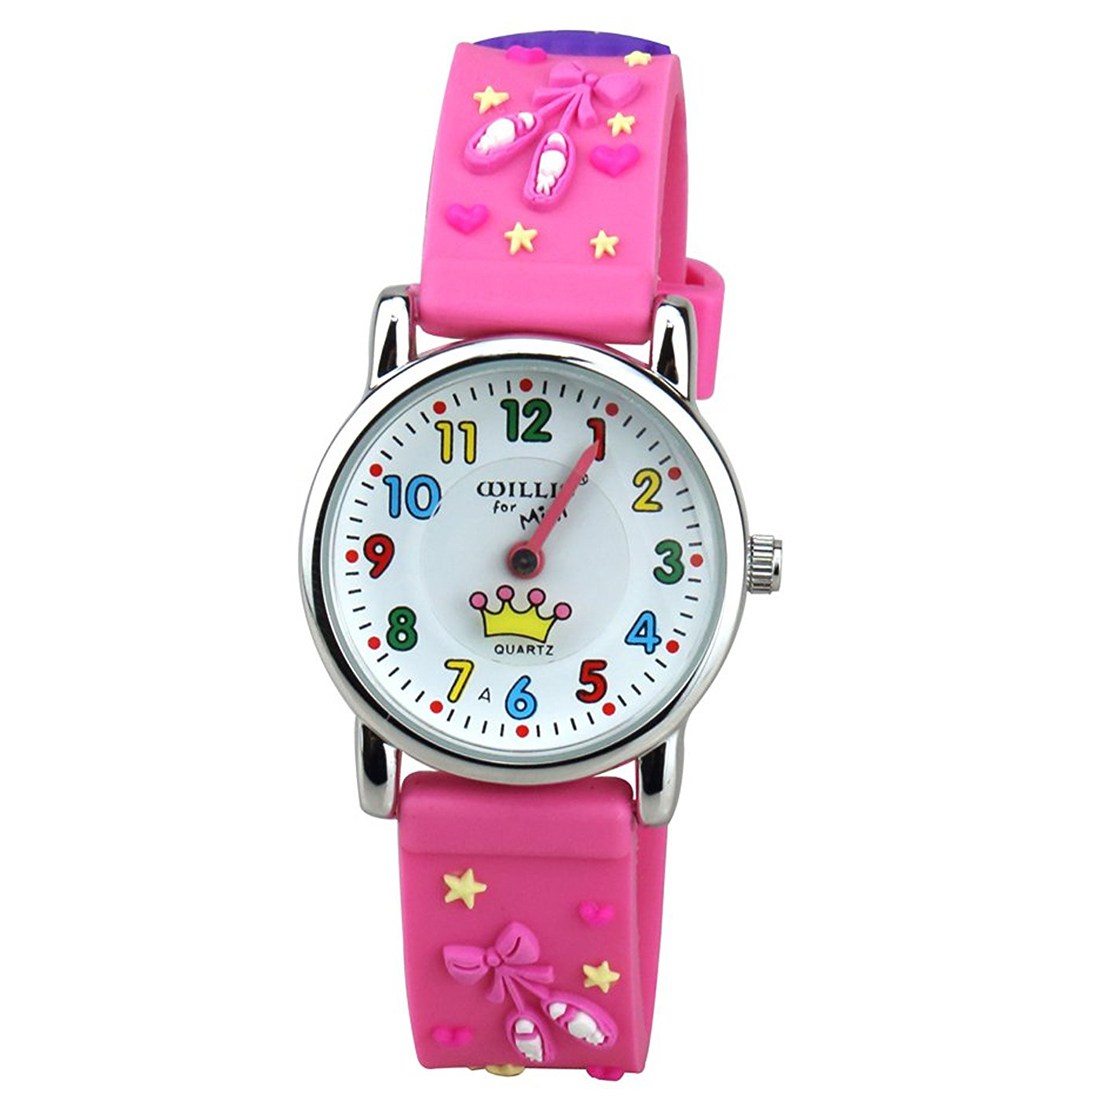 WILLIS Kids Time Teacher Watch Easy Read Quartz Watch With 3D Cartoon Soft Silicone Watch Band Comfortable For Children Cute S